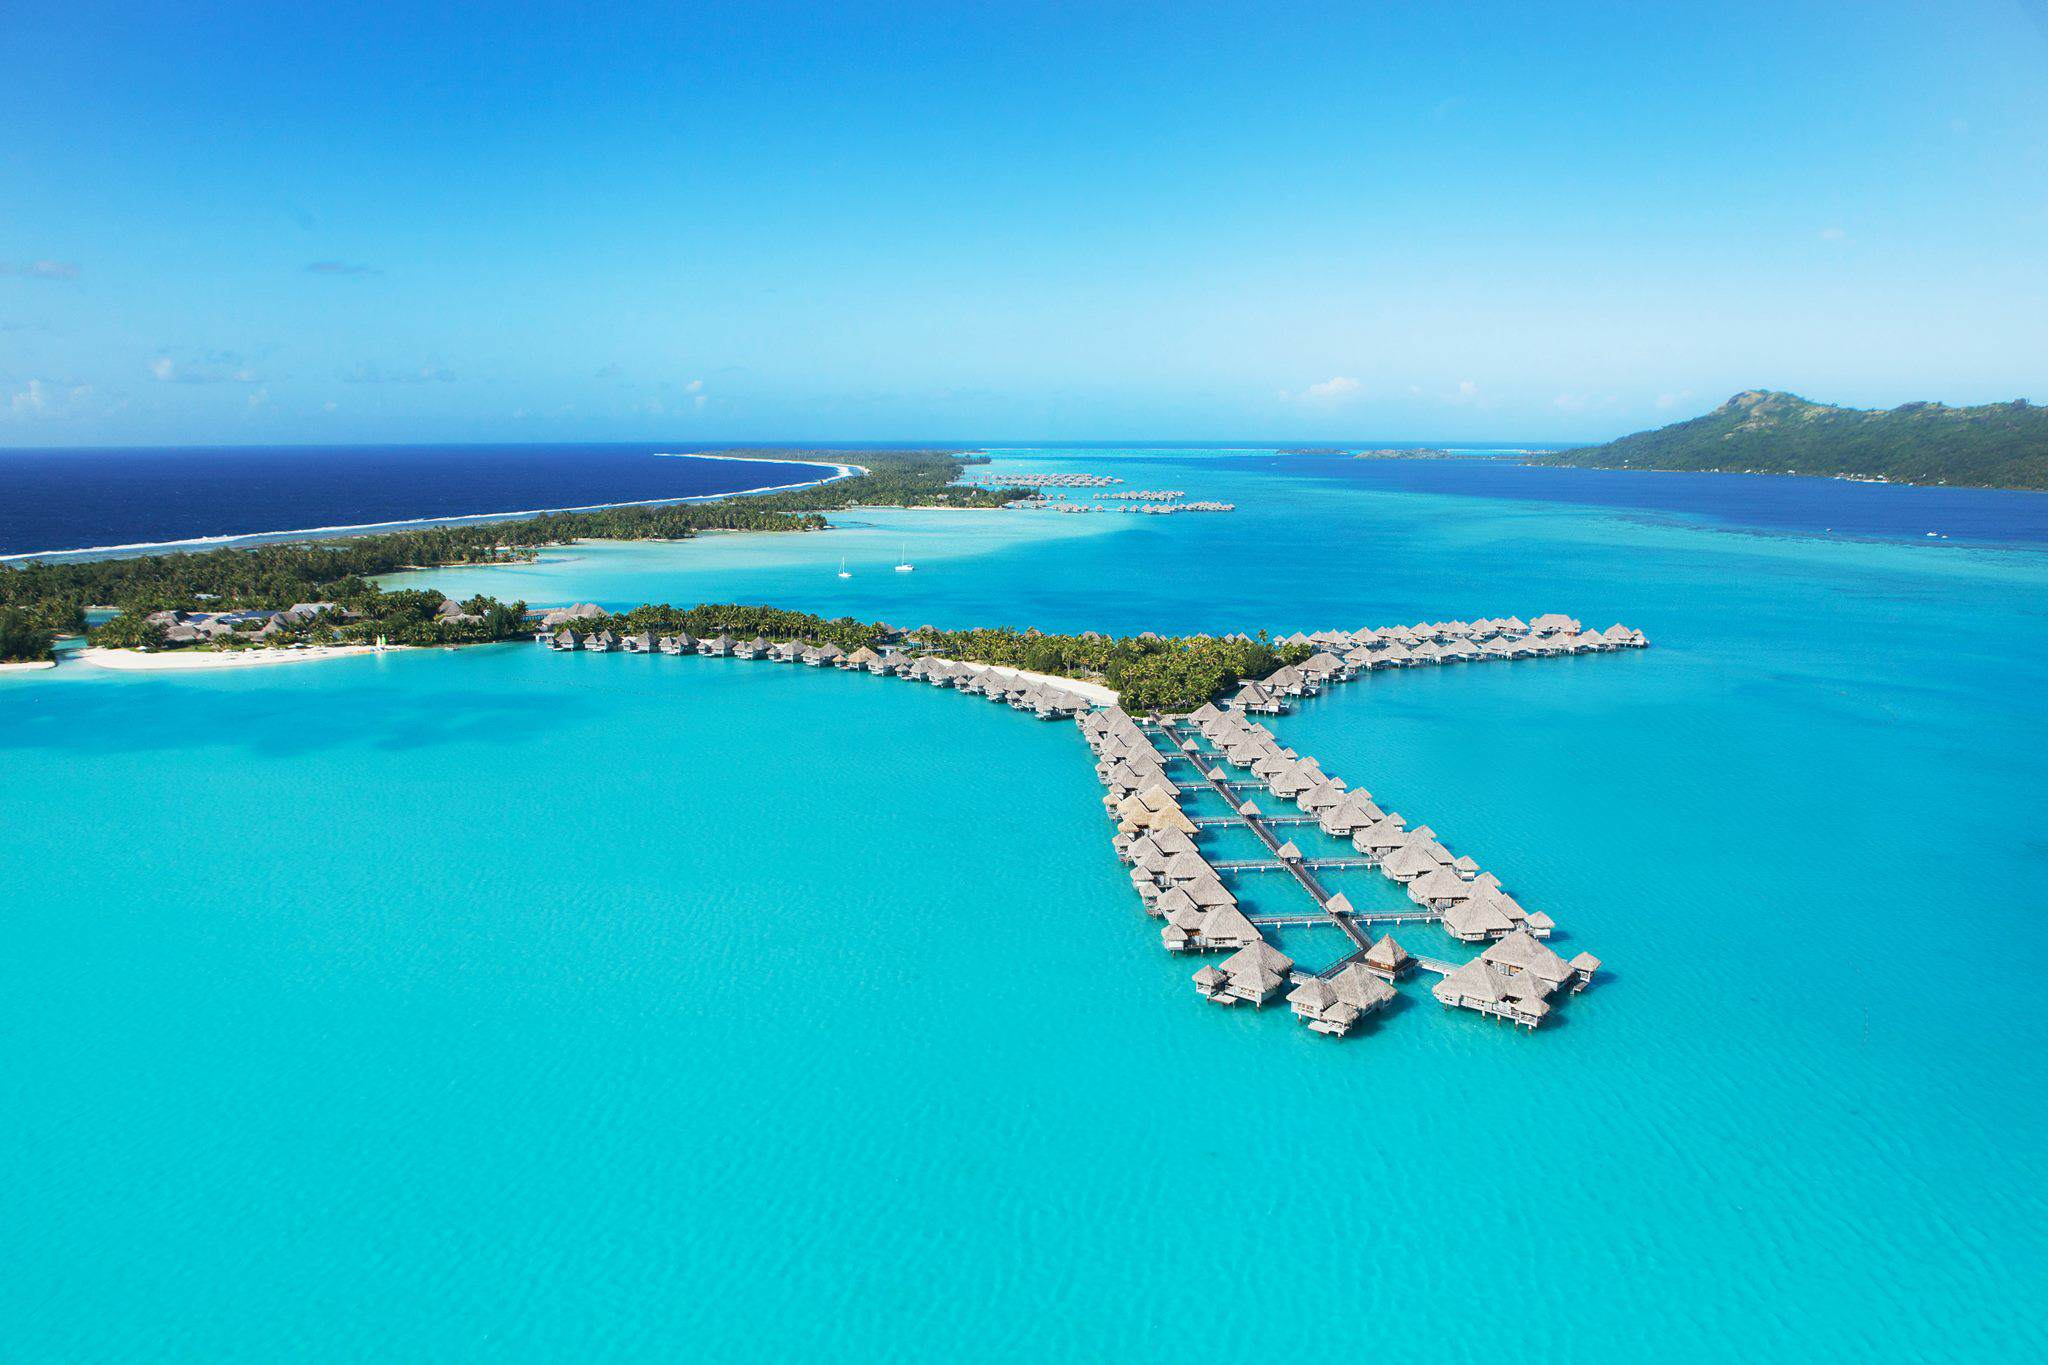 St. Regis Bora Bora Resort 8 dicas Viaje Global